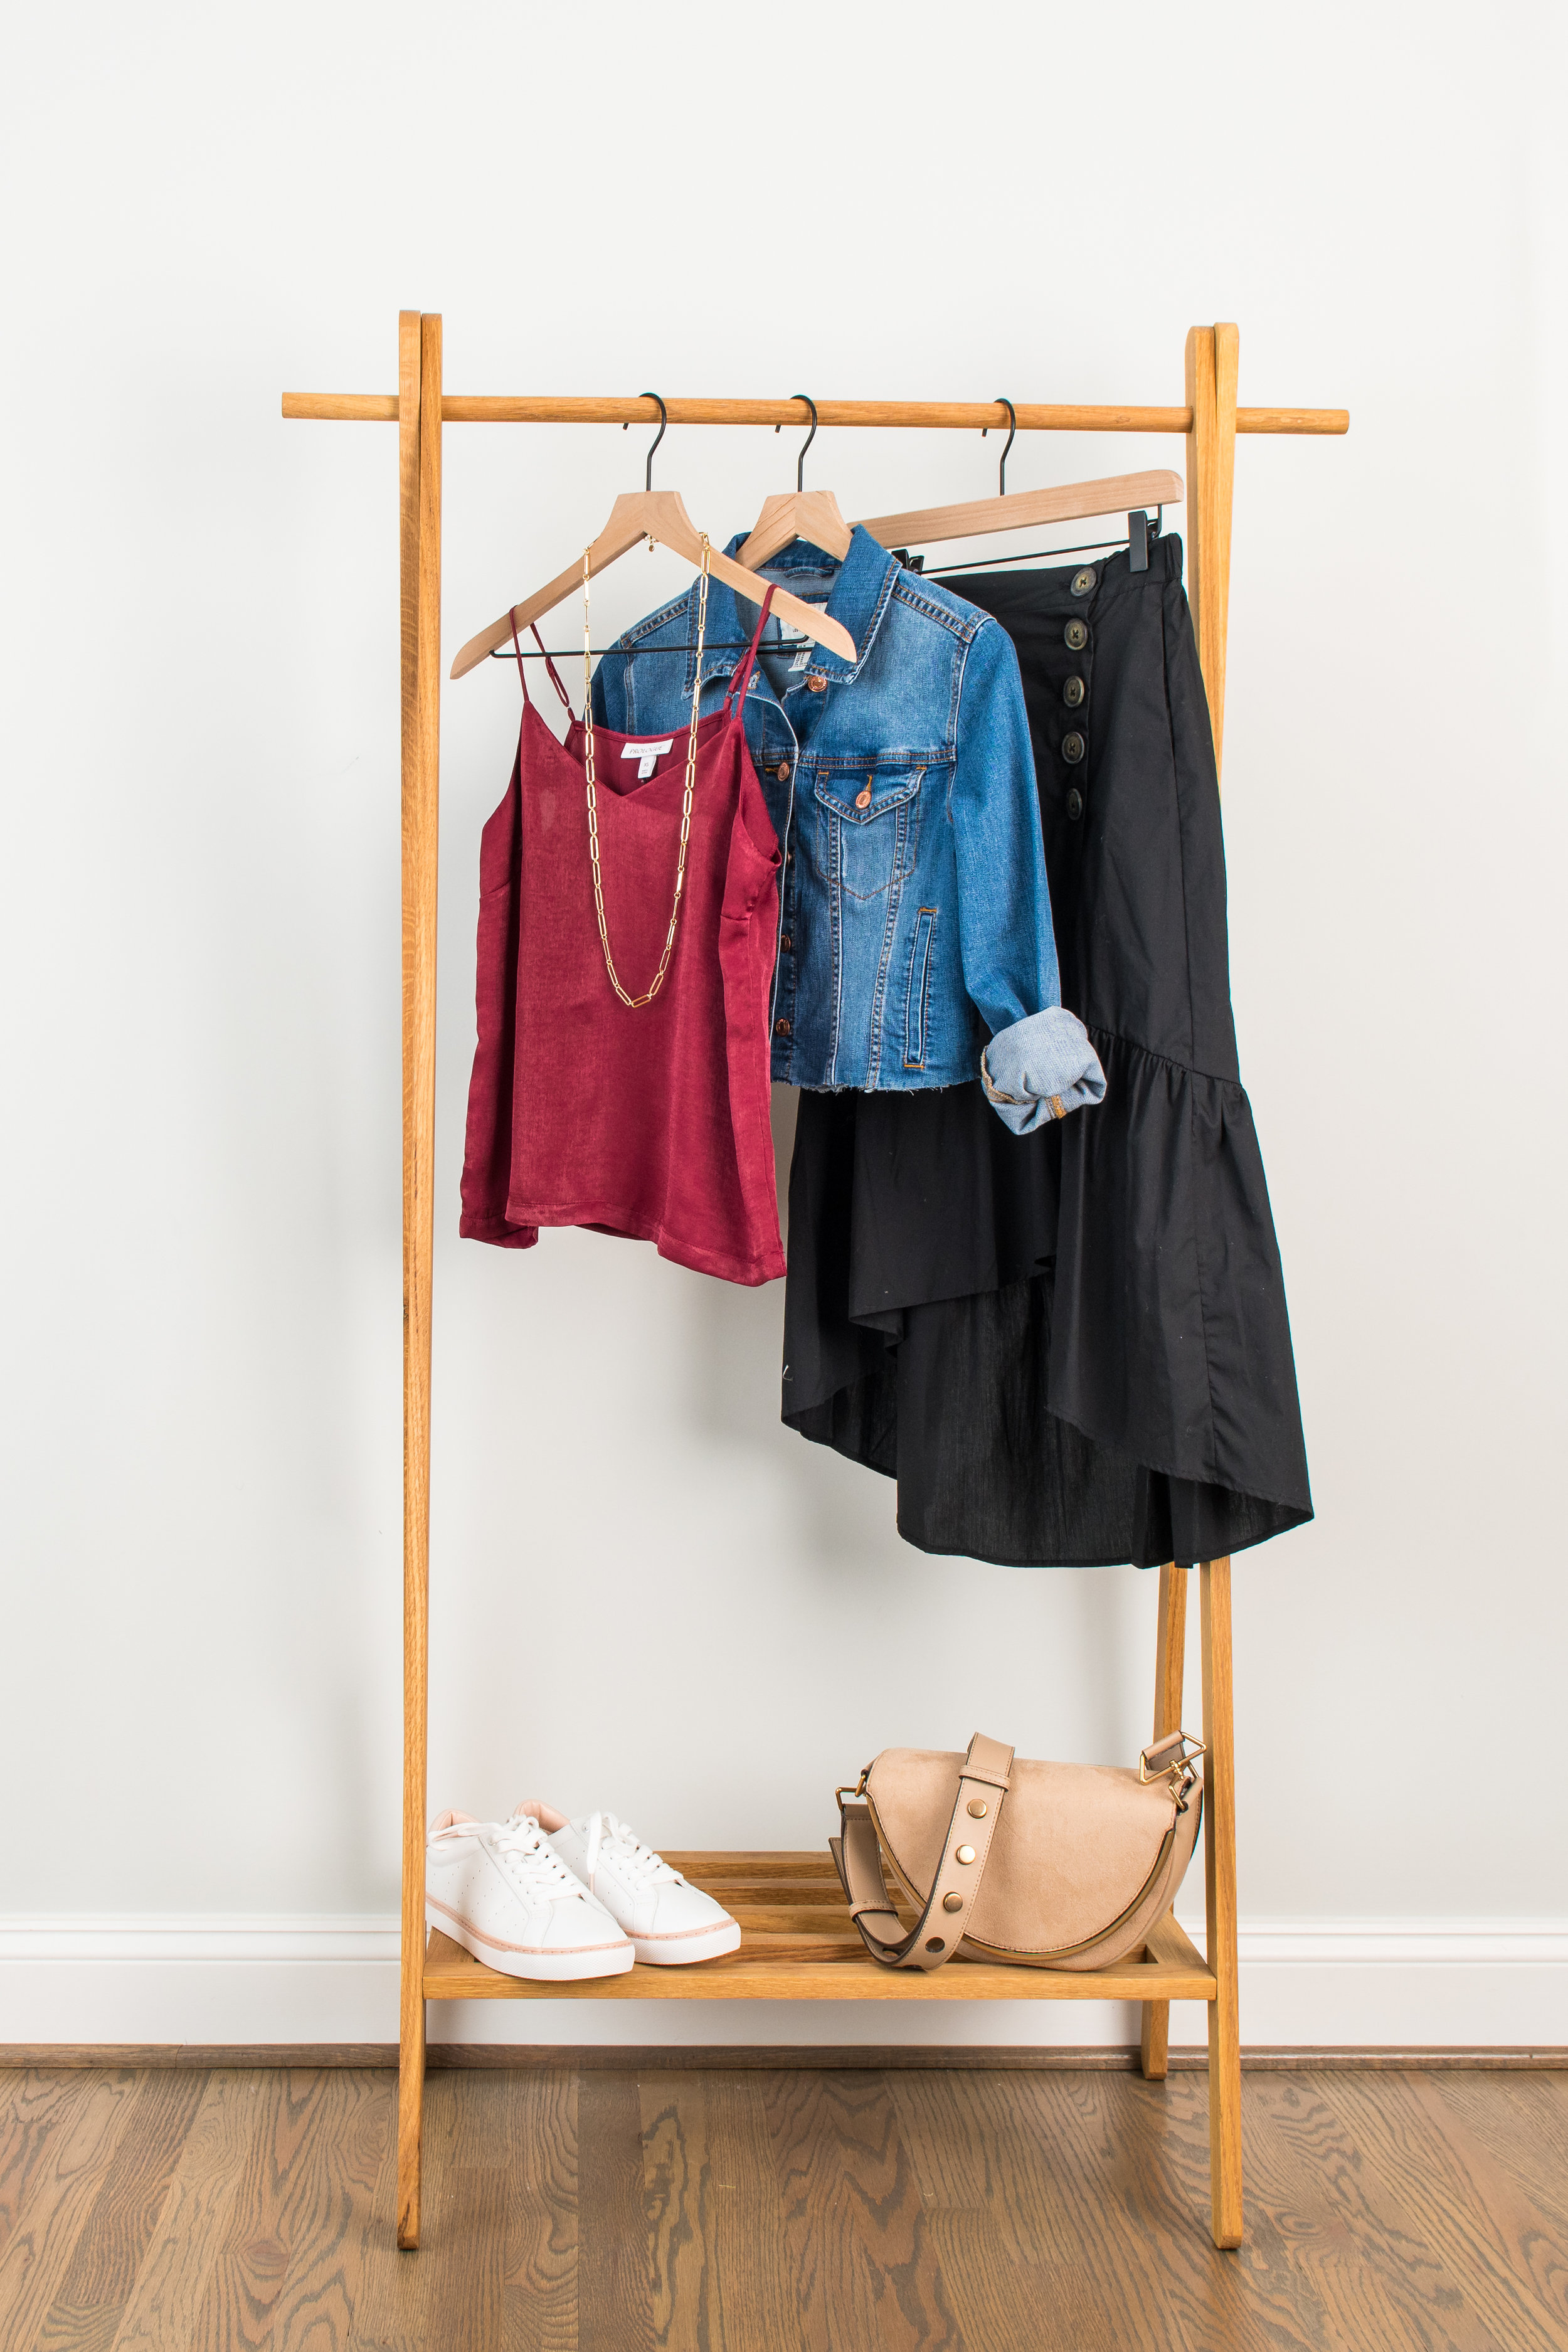 Easy Like Saturday Daytime - Wear to: Lunch & day out shoppingSilk Camisole: 1 // 2 // 3Ruffle Skirt: 1 // 2 // 3Denim Jacket: 1 // 2 // 3Sneakers: 1 // 2 // 3Necklace: 1 // 2 // 3Bag : 1 // 2 // 3